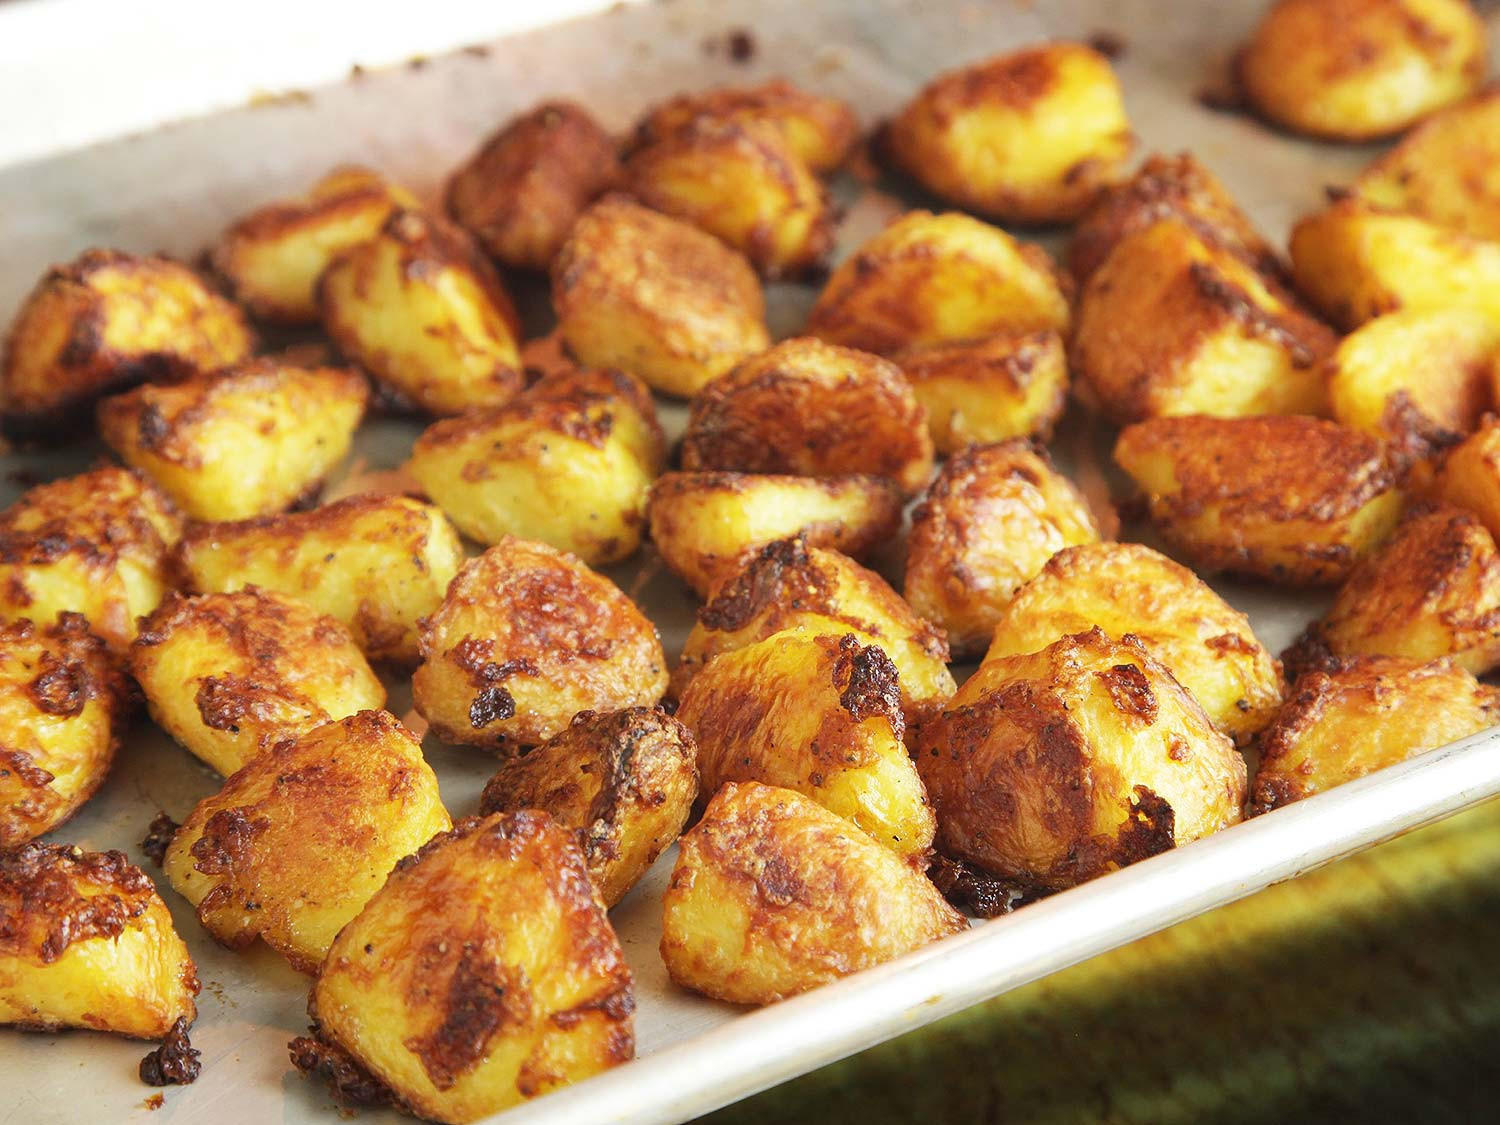 Roasted Potatoes In The Oven  roast potatoes in oven